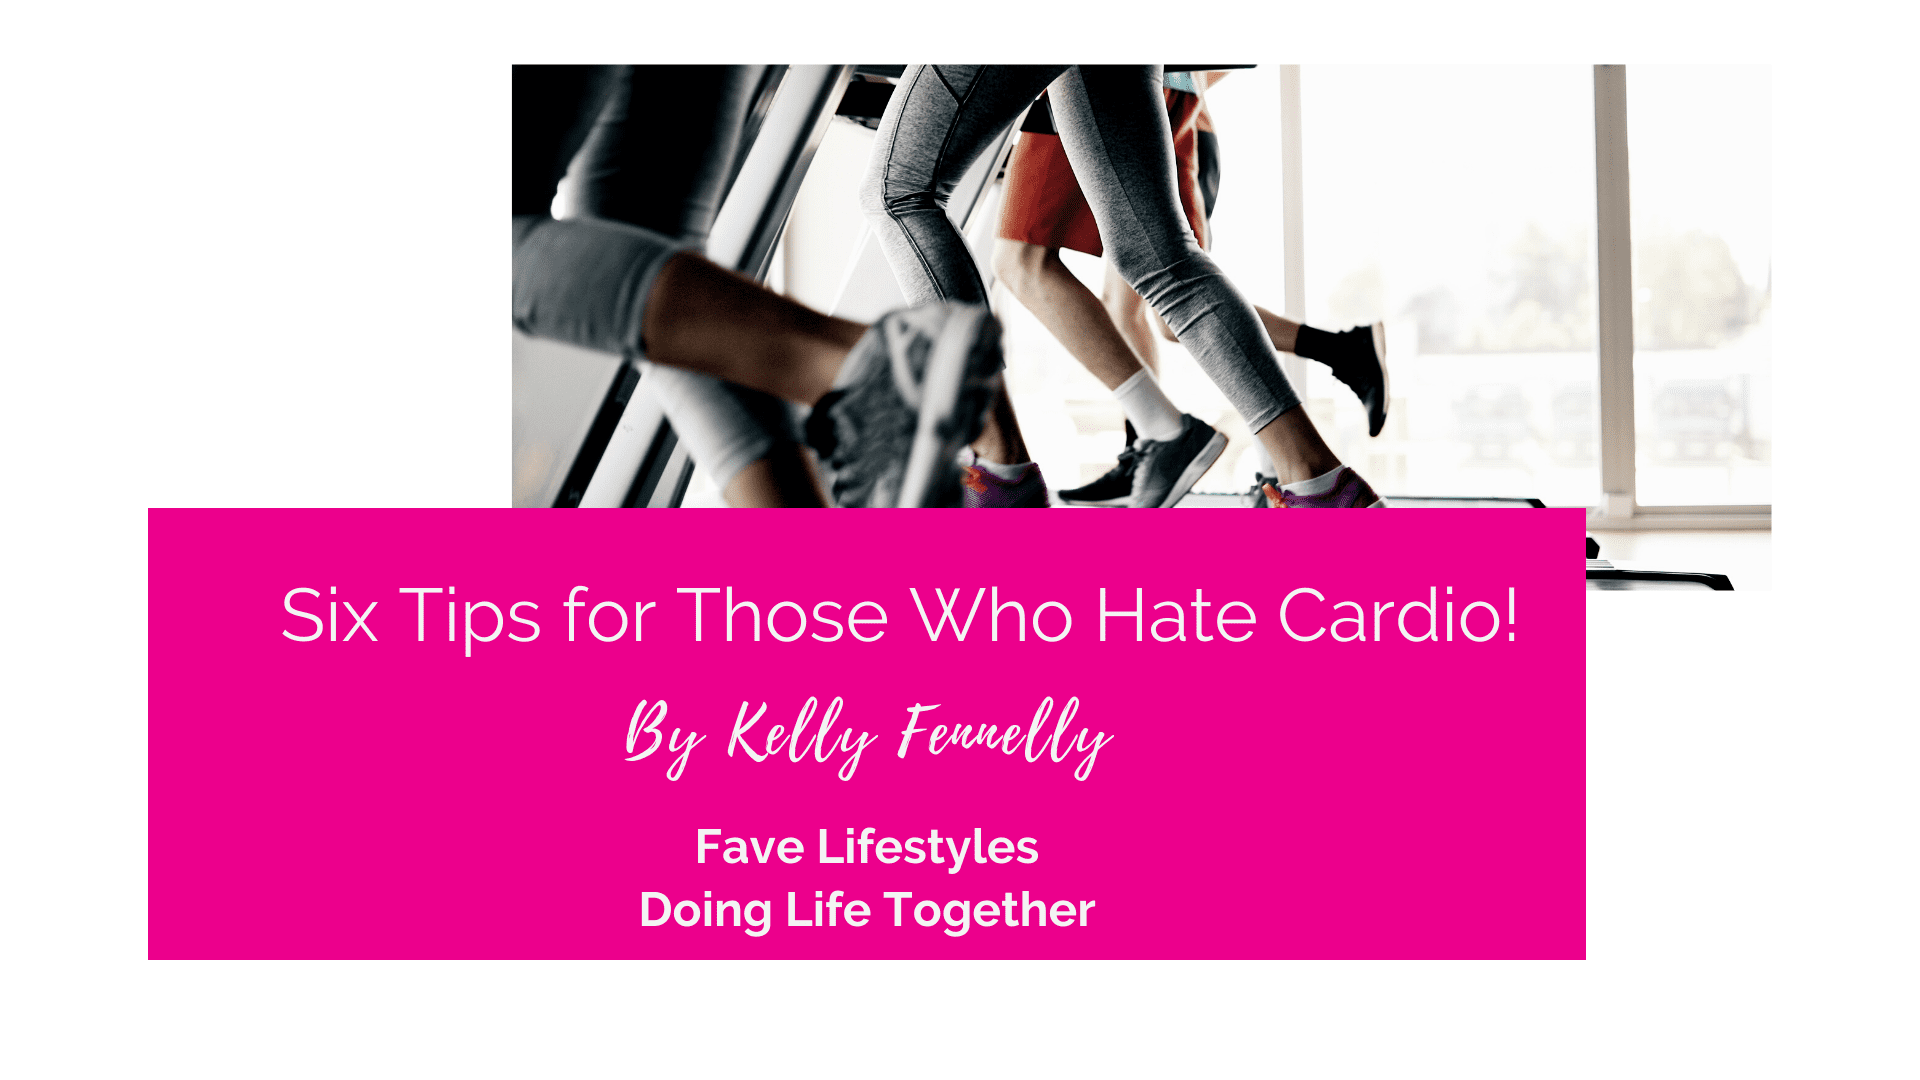 Six Tips for Those Who Hate Cardio